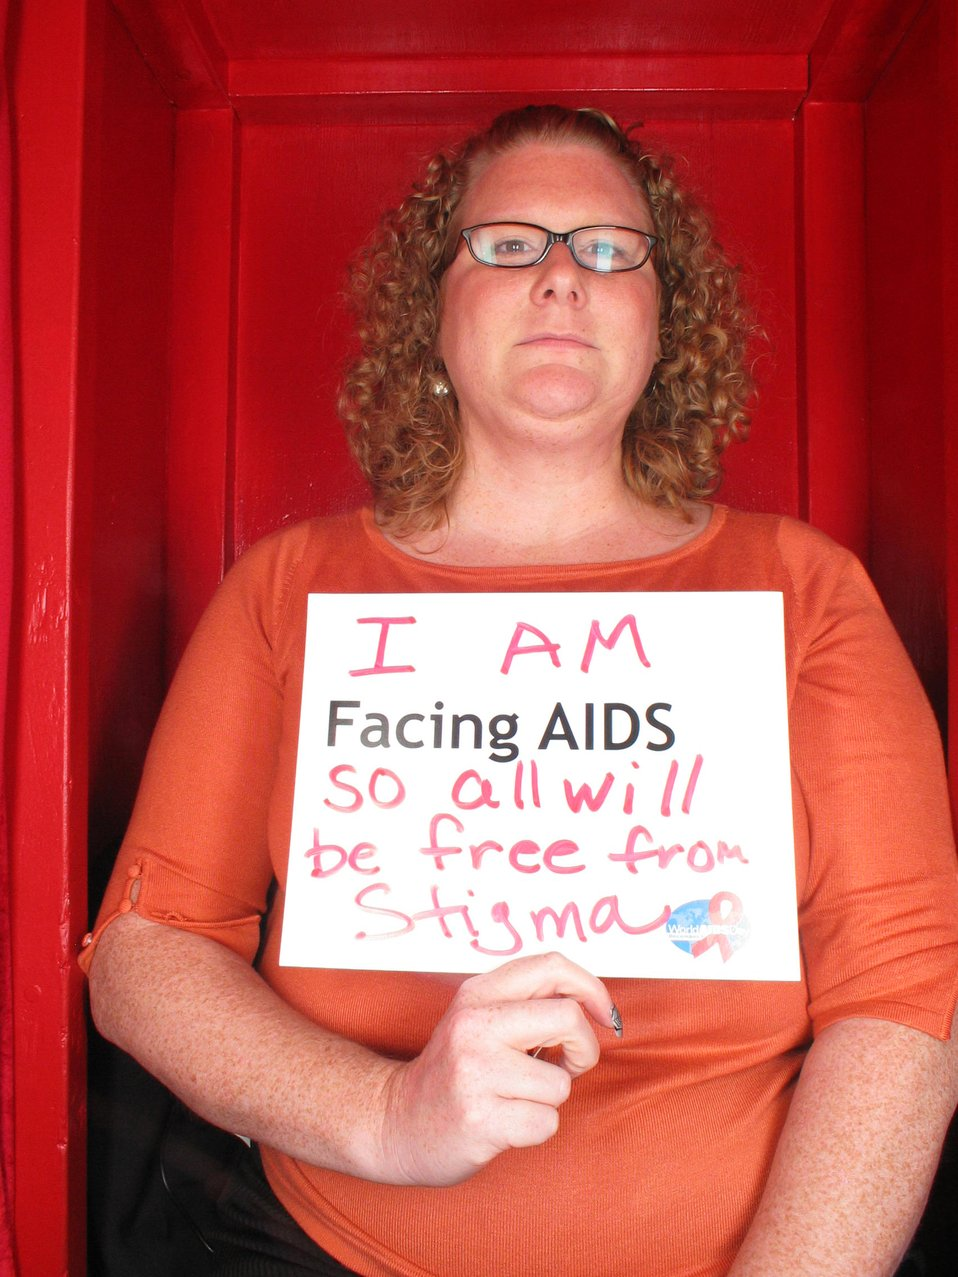 I am Facing AIDS so all will be free from stigma.